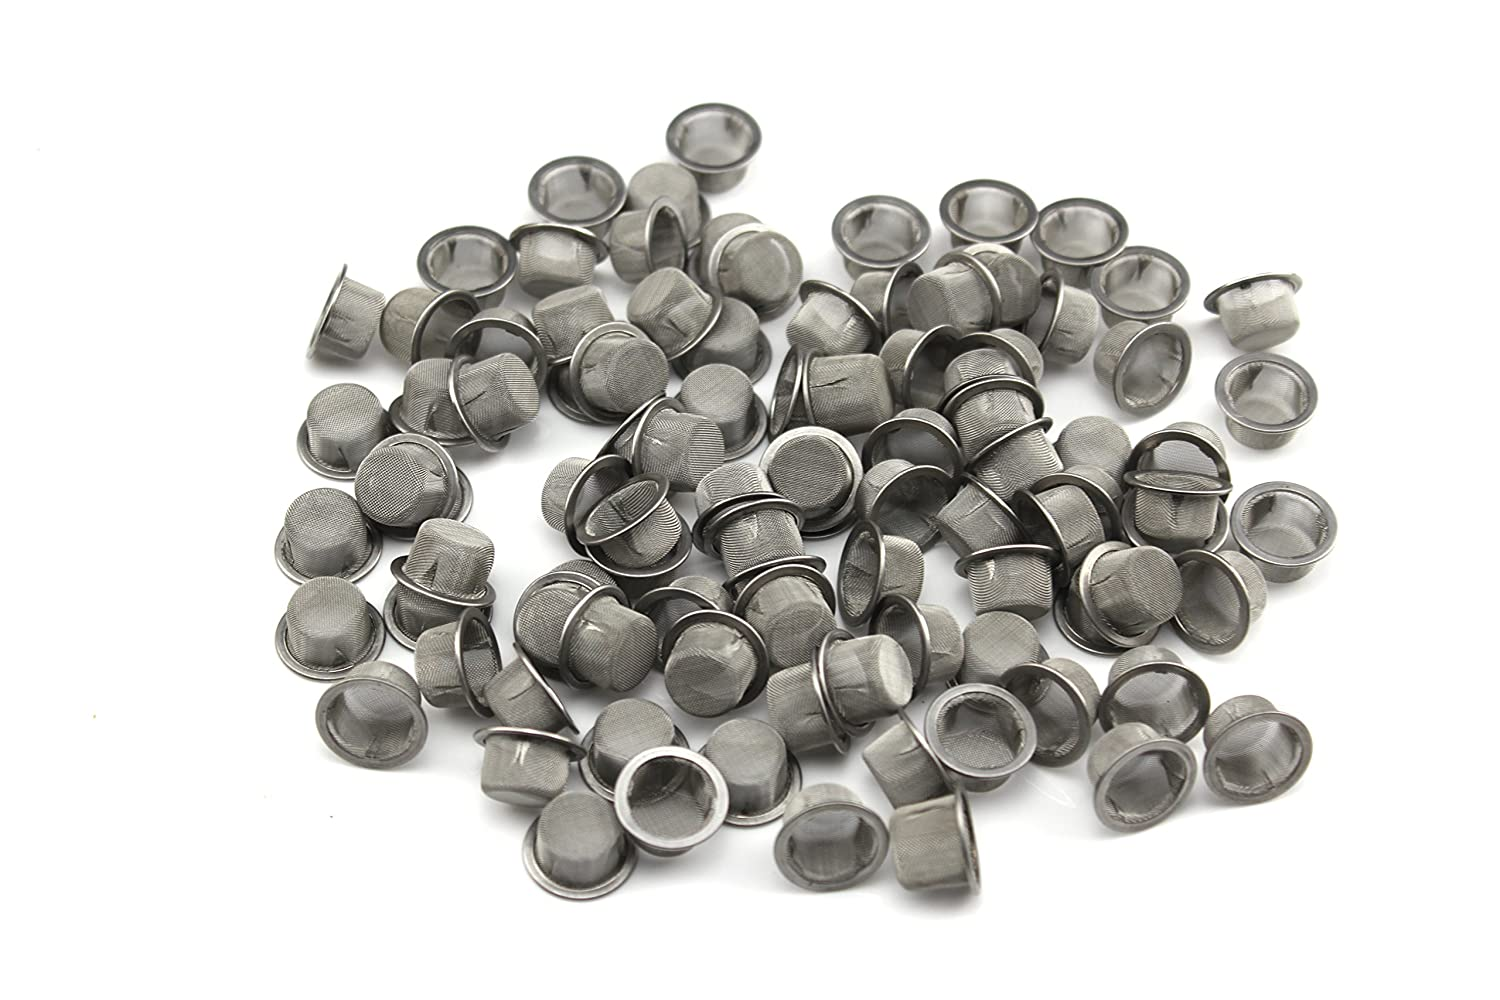 DeYue Crystal Pipe Screens, 60pcs 0.5Inch Diameter Premium Stainless Steel Mental Screen Filters for Crystal Pipe Use (60)